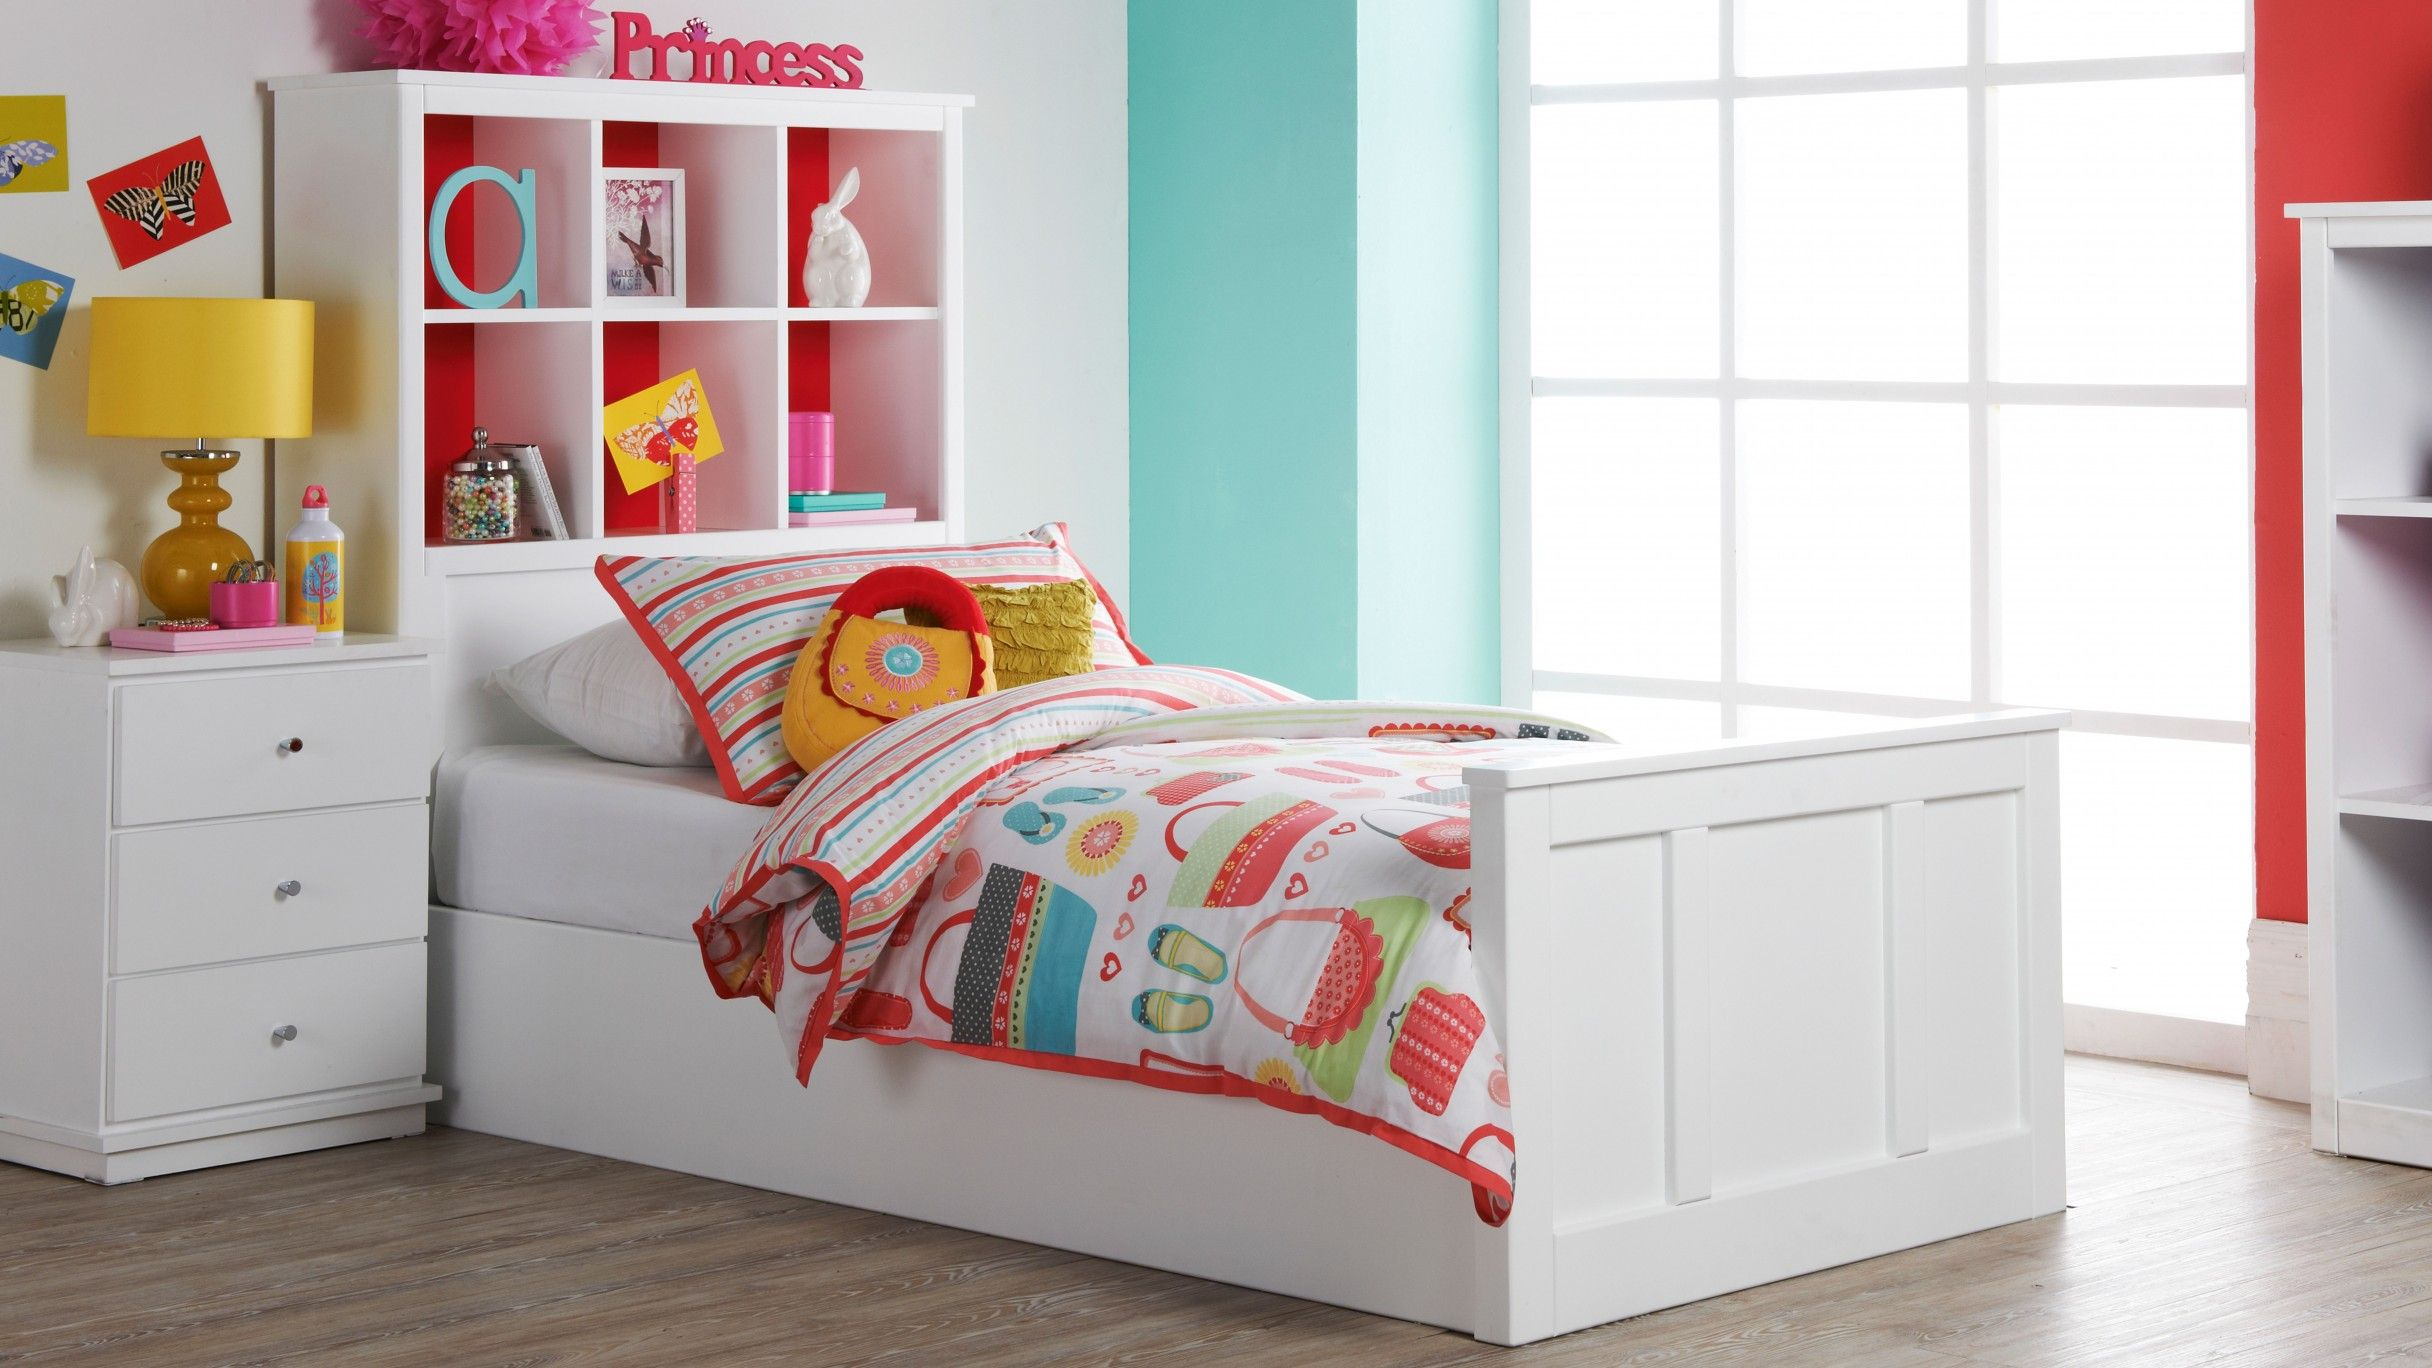 Single Beds For Kids Lola Single Bed Would Love To Make Custom With Queen Bed